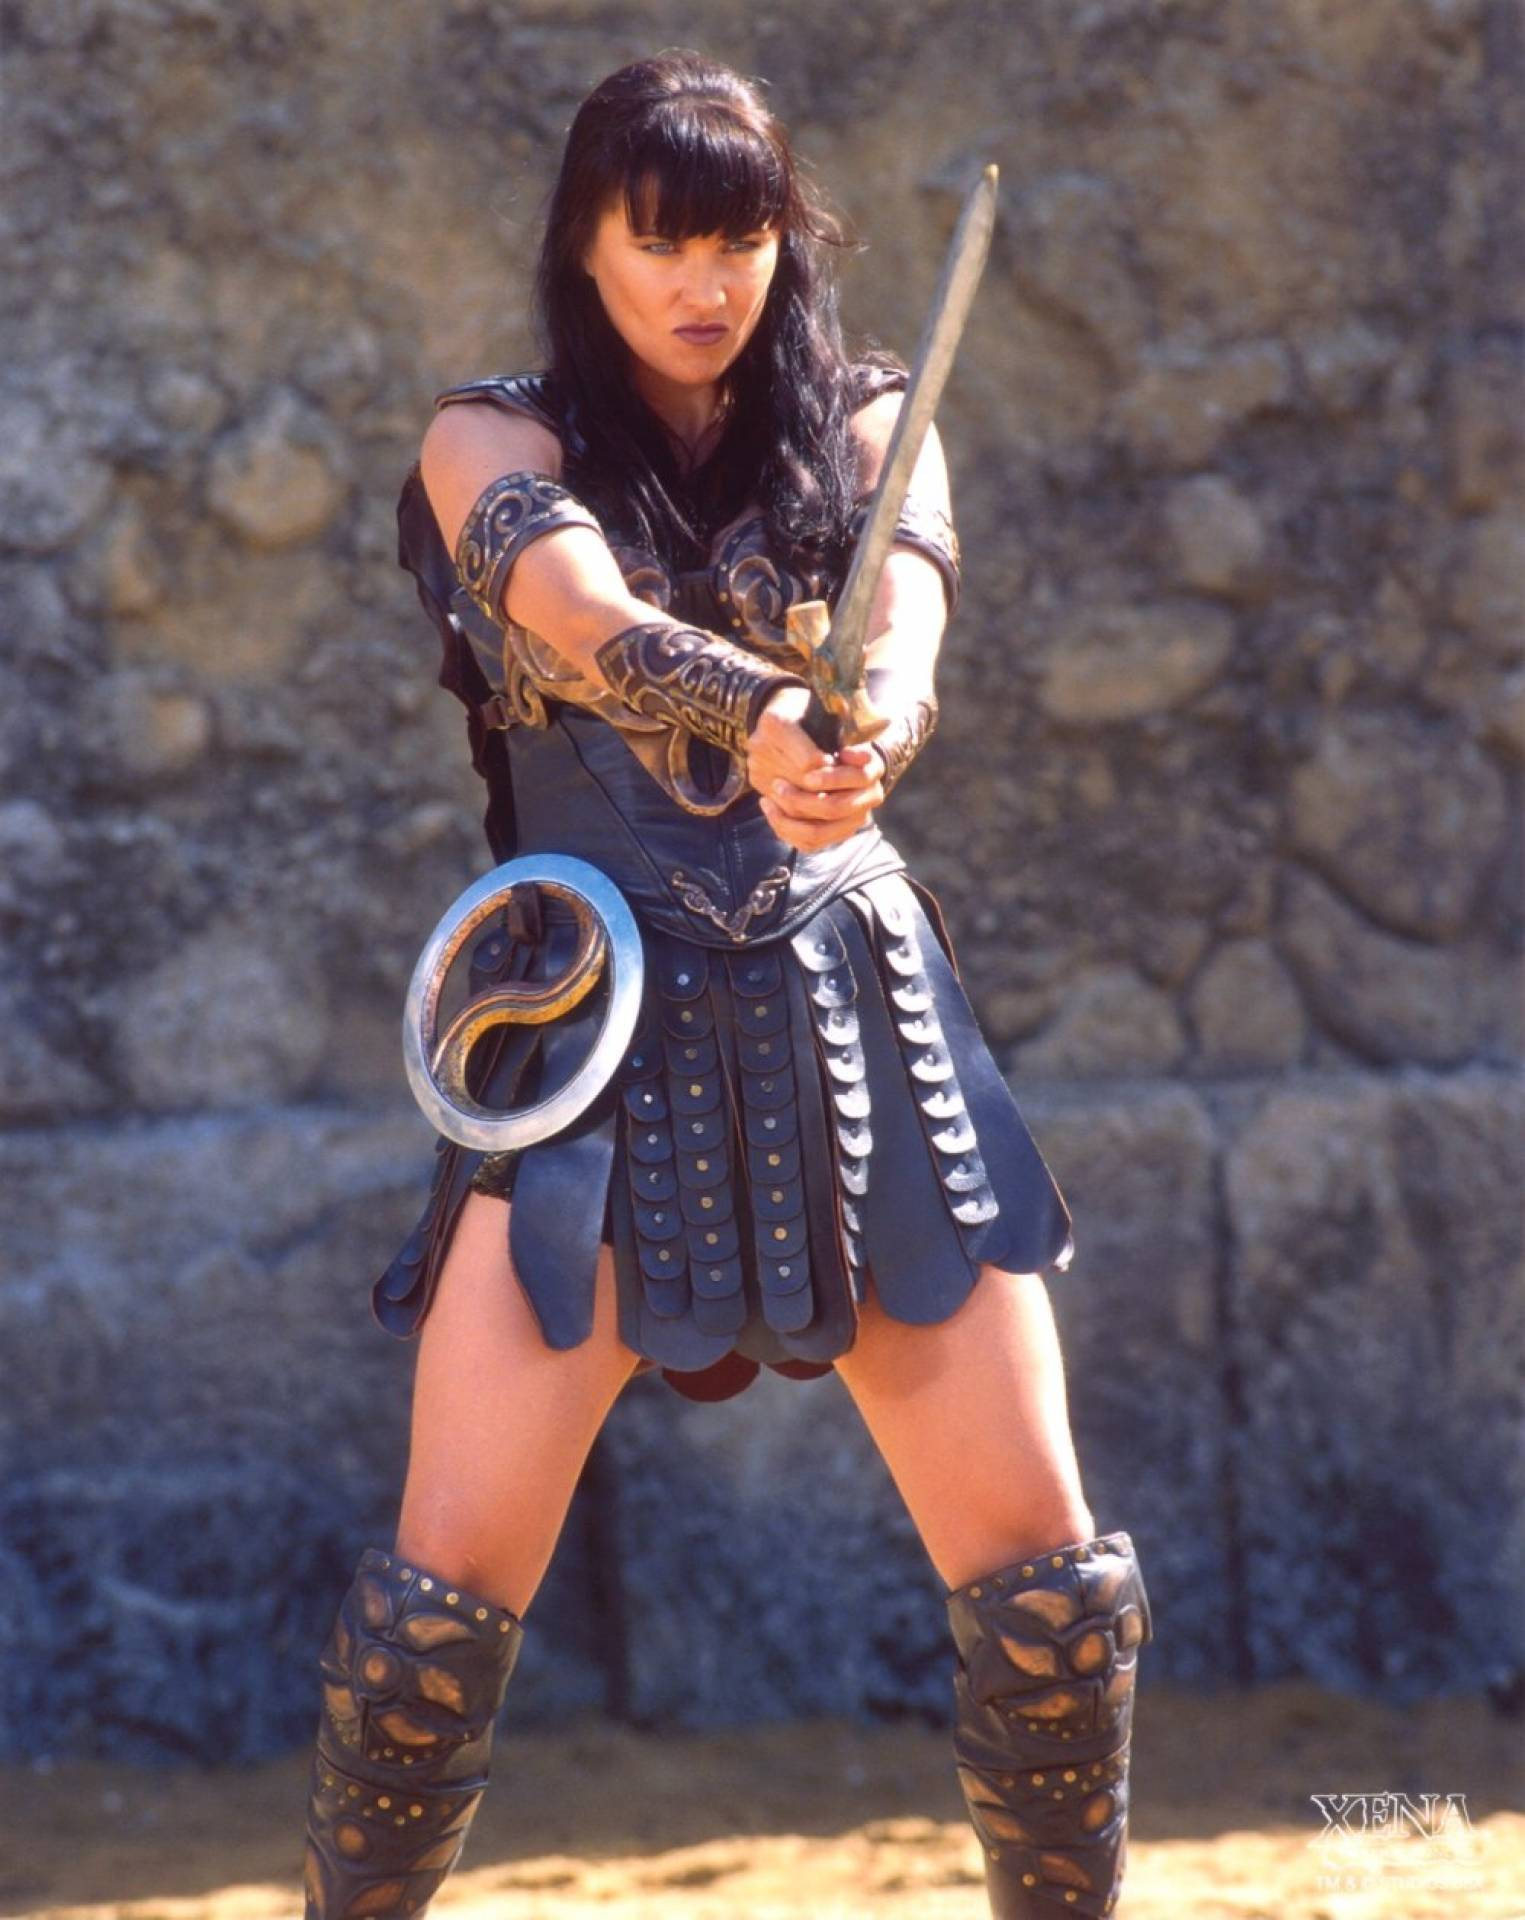 Inspiring Women in Pop Culture | Xena